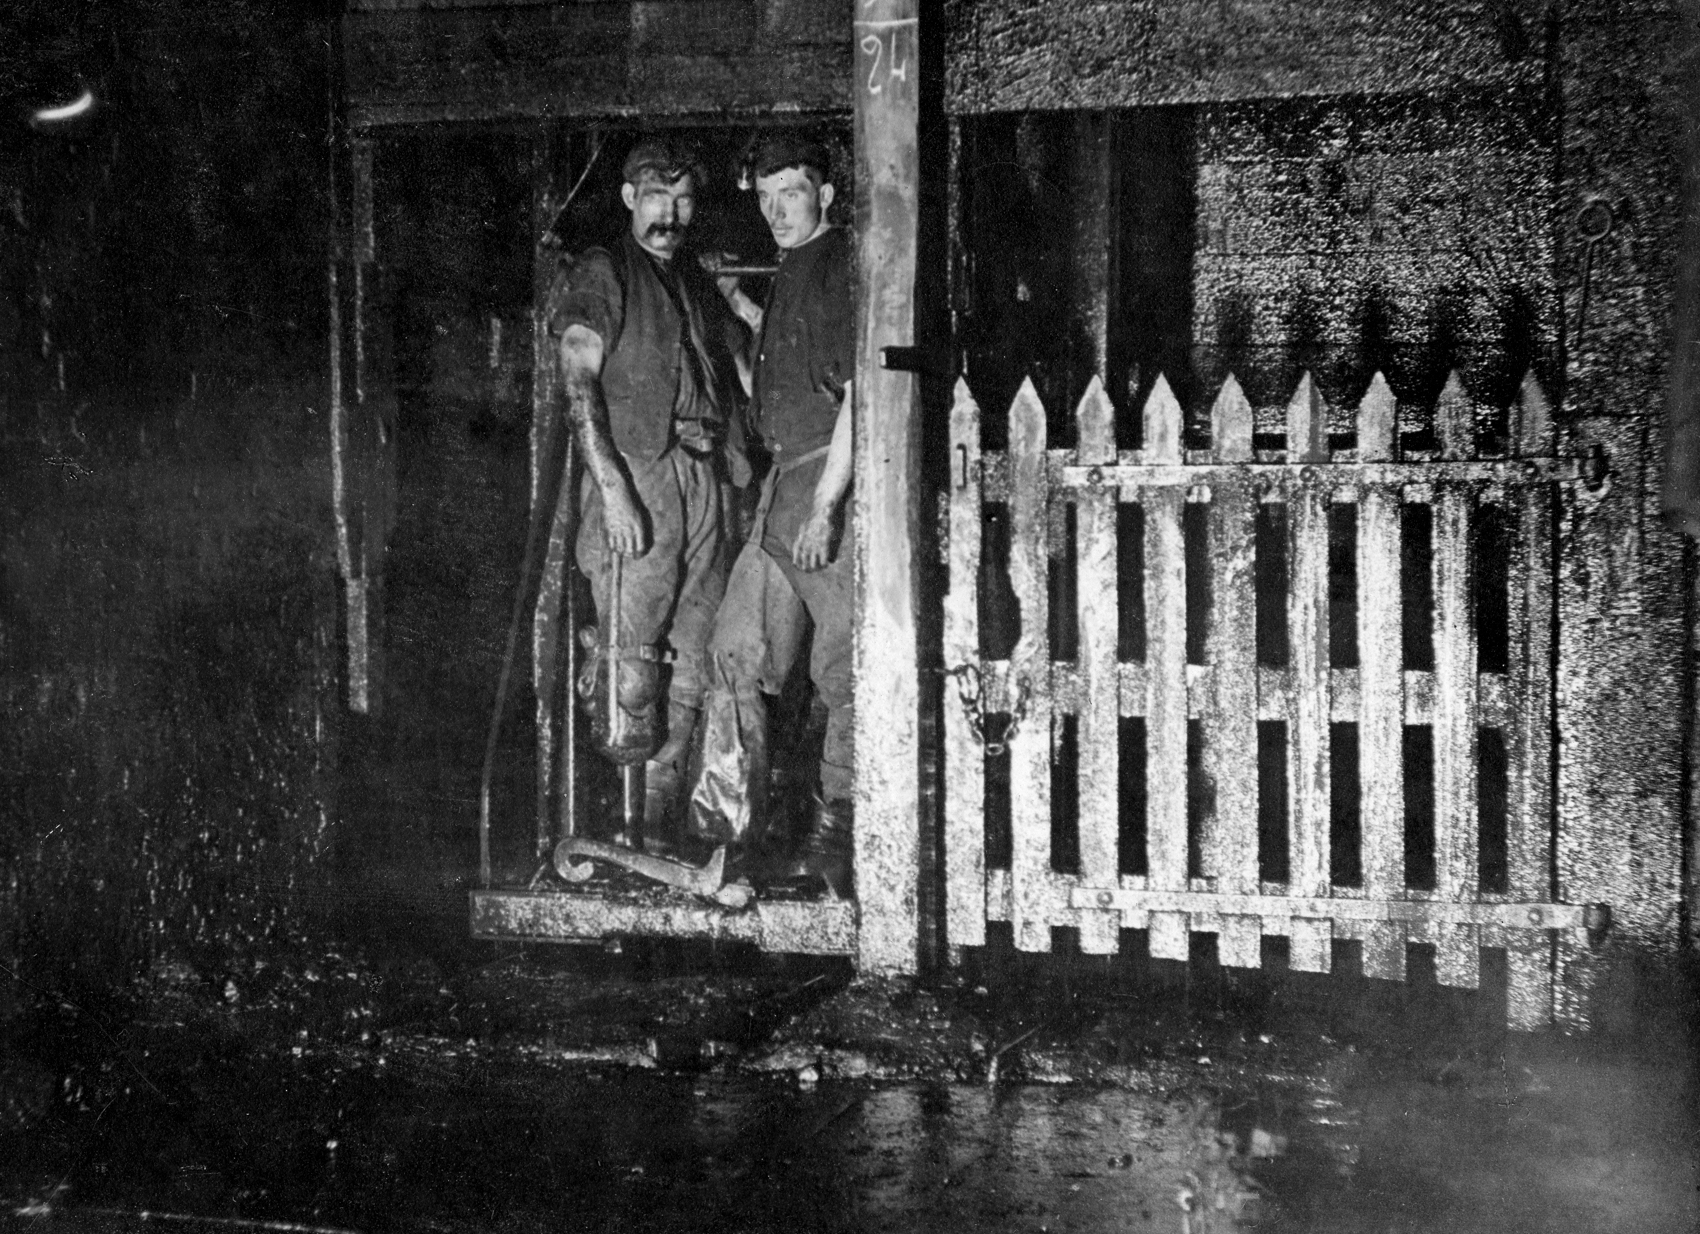 Two miners in a cage underground waiting to ascend to the surface at Camp Colliery, around 1910. The gate on the right shows that this isn't the bottom level of the pit - it goes further down.